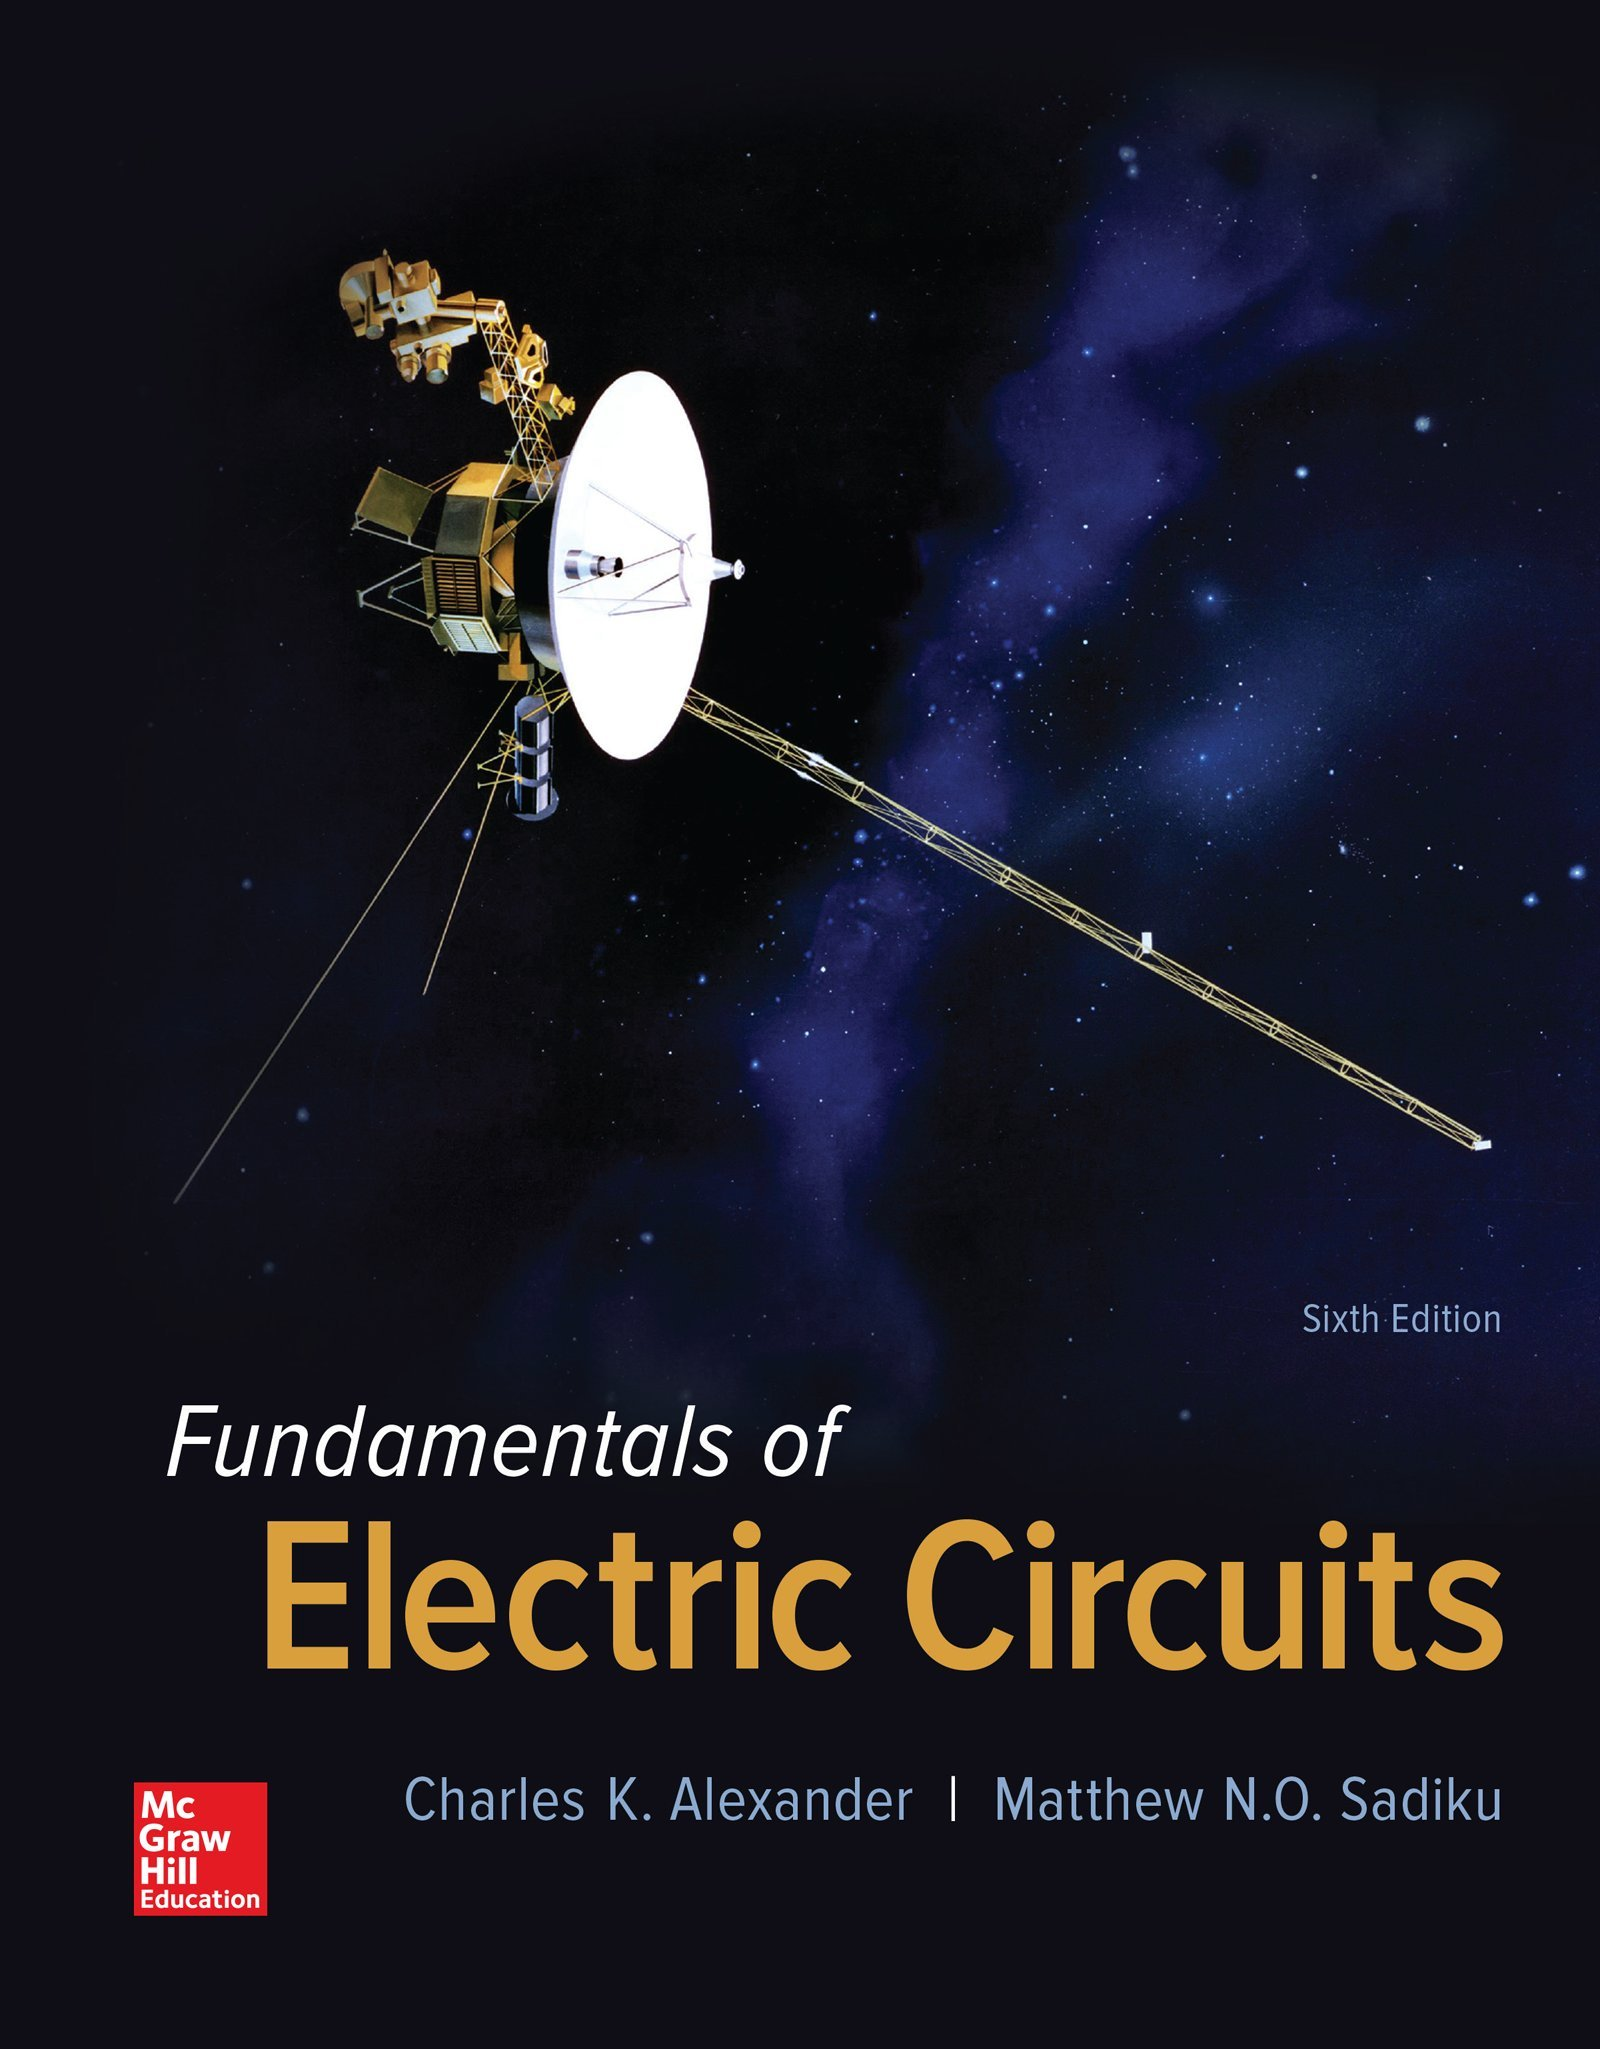 Fundamentals Of Electric Circuits Charles K Alexander Matthew Electricity And Lessons Exercises Practice Tests Sadiku 9780078028229 Books